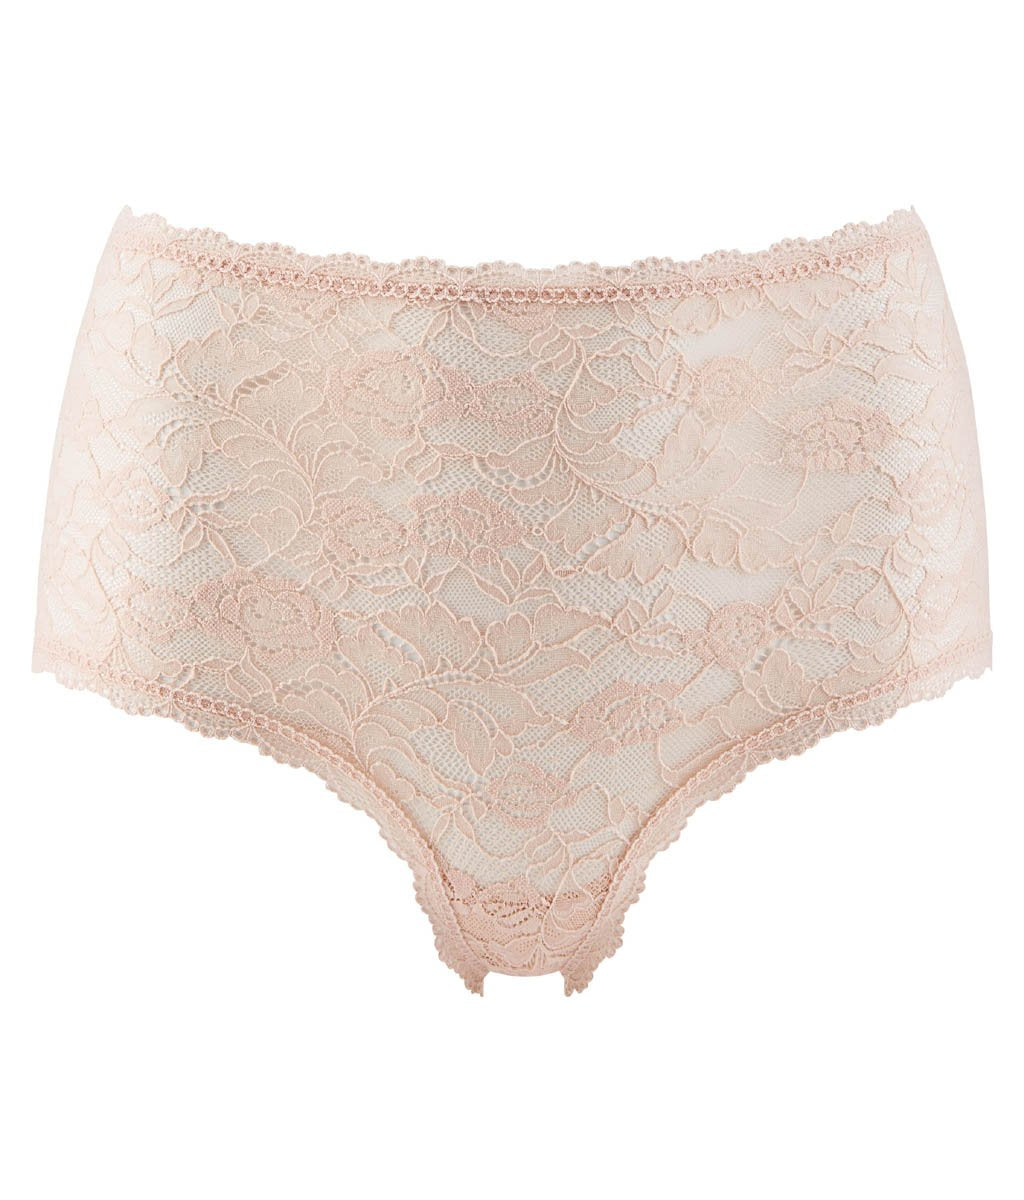 Aubade 'Rosessence' (Nude d'Été) Full Brief/Retro Brief - Sandra Dee - Product Shot - Front